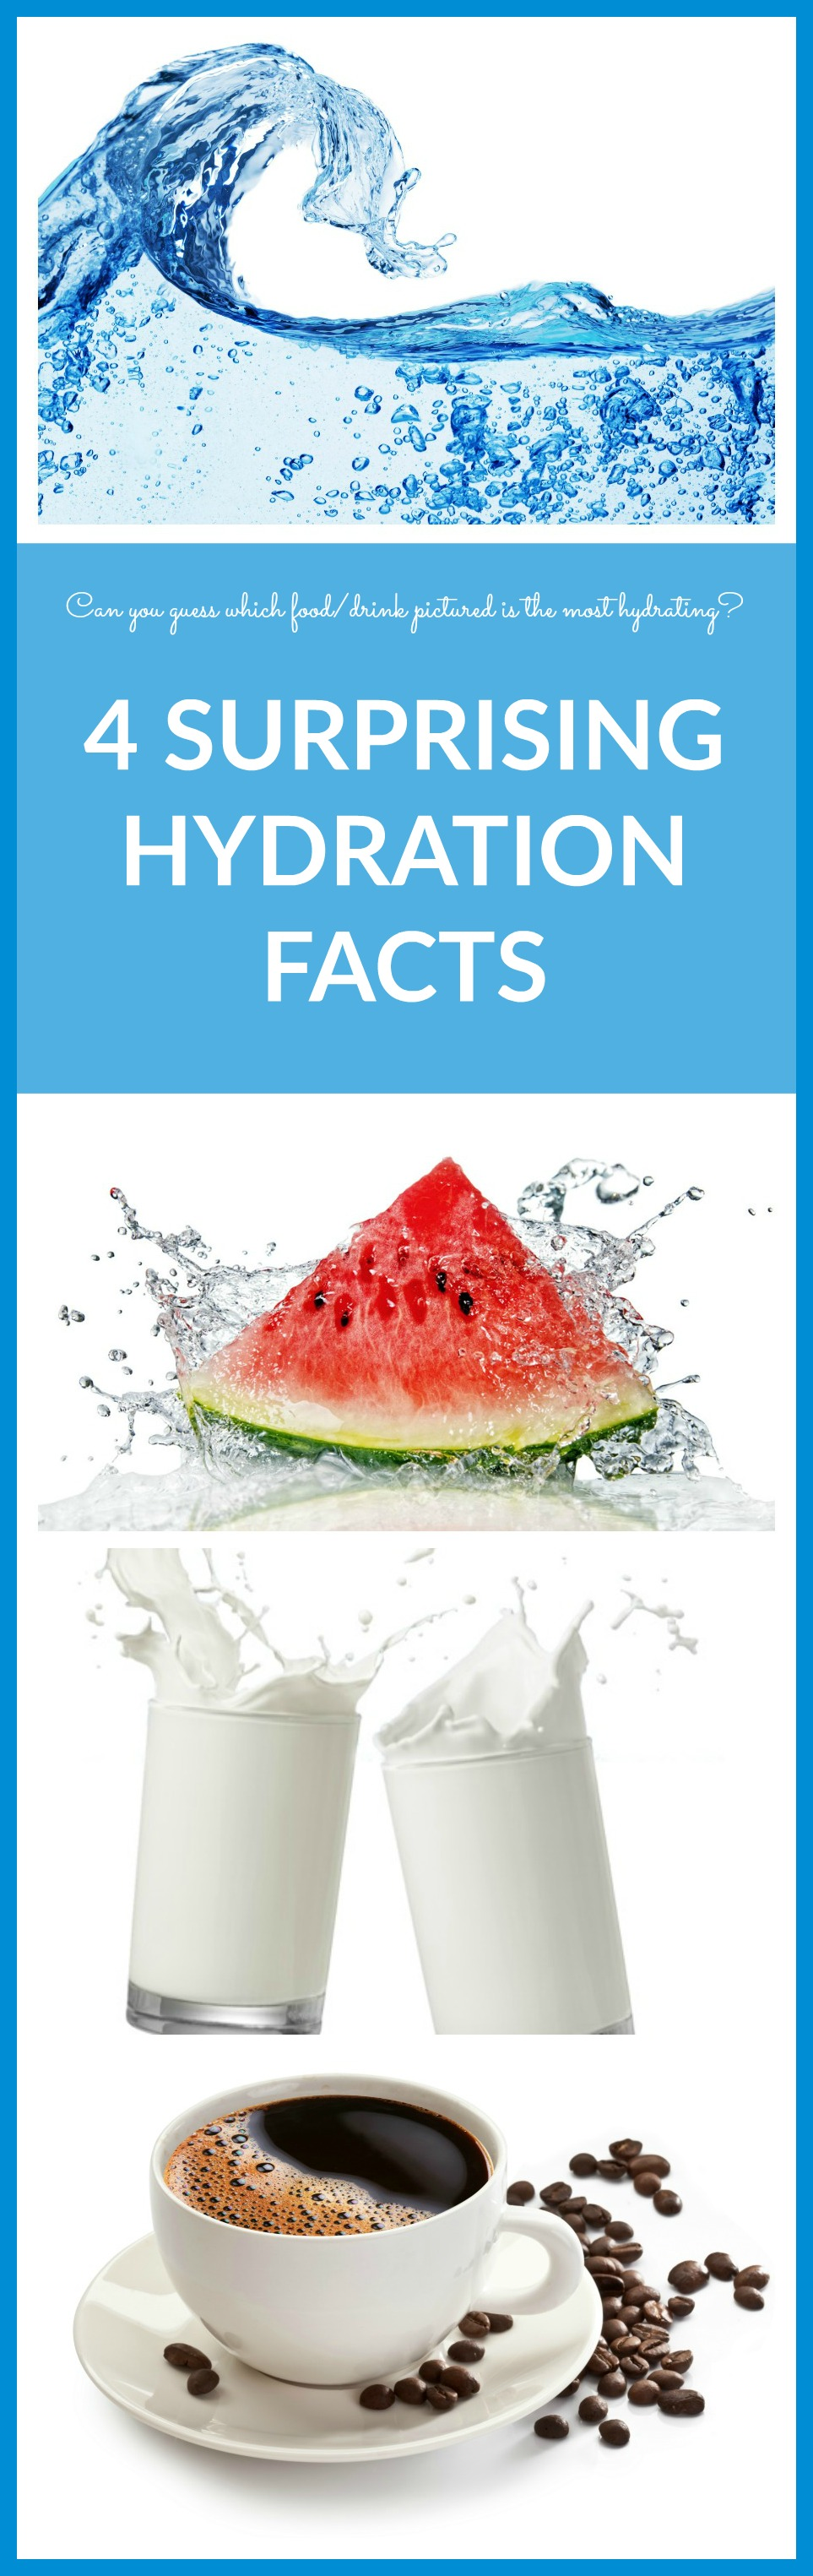 4 Surprising Hydration Facts